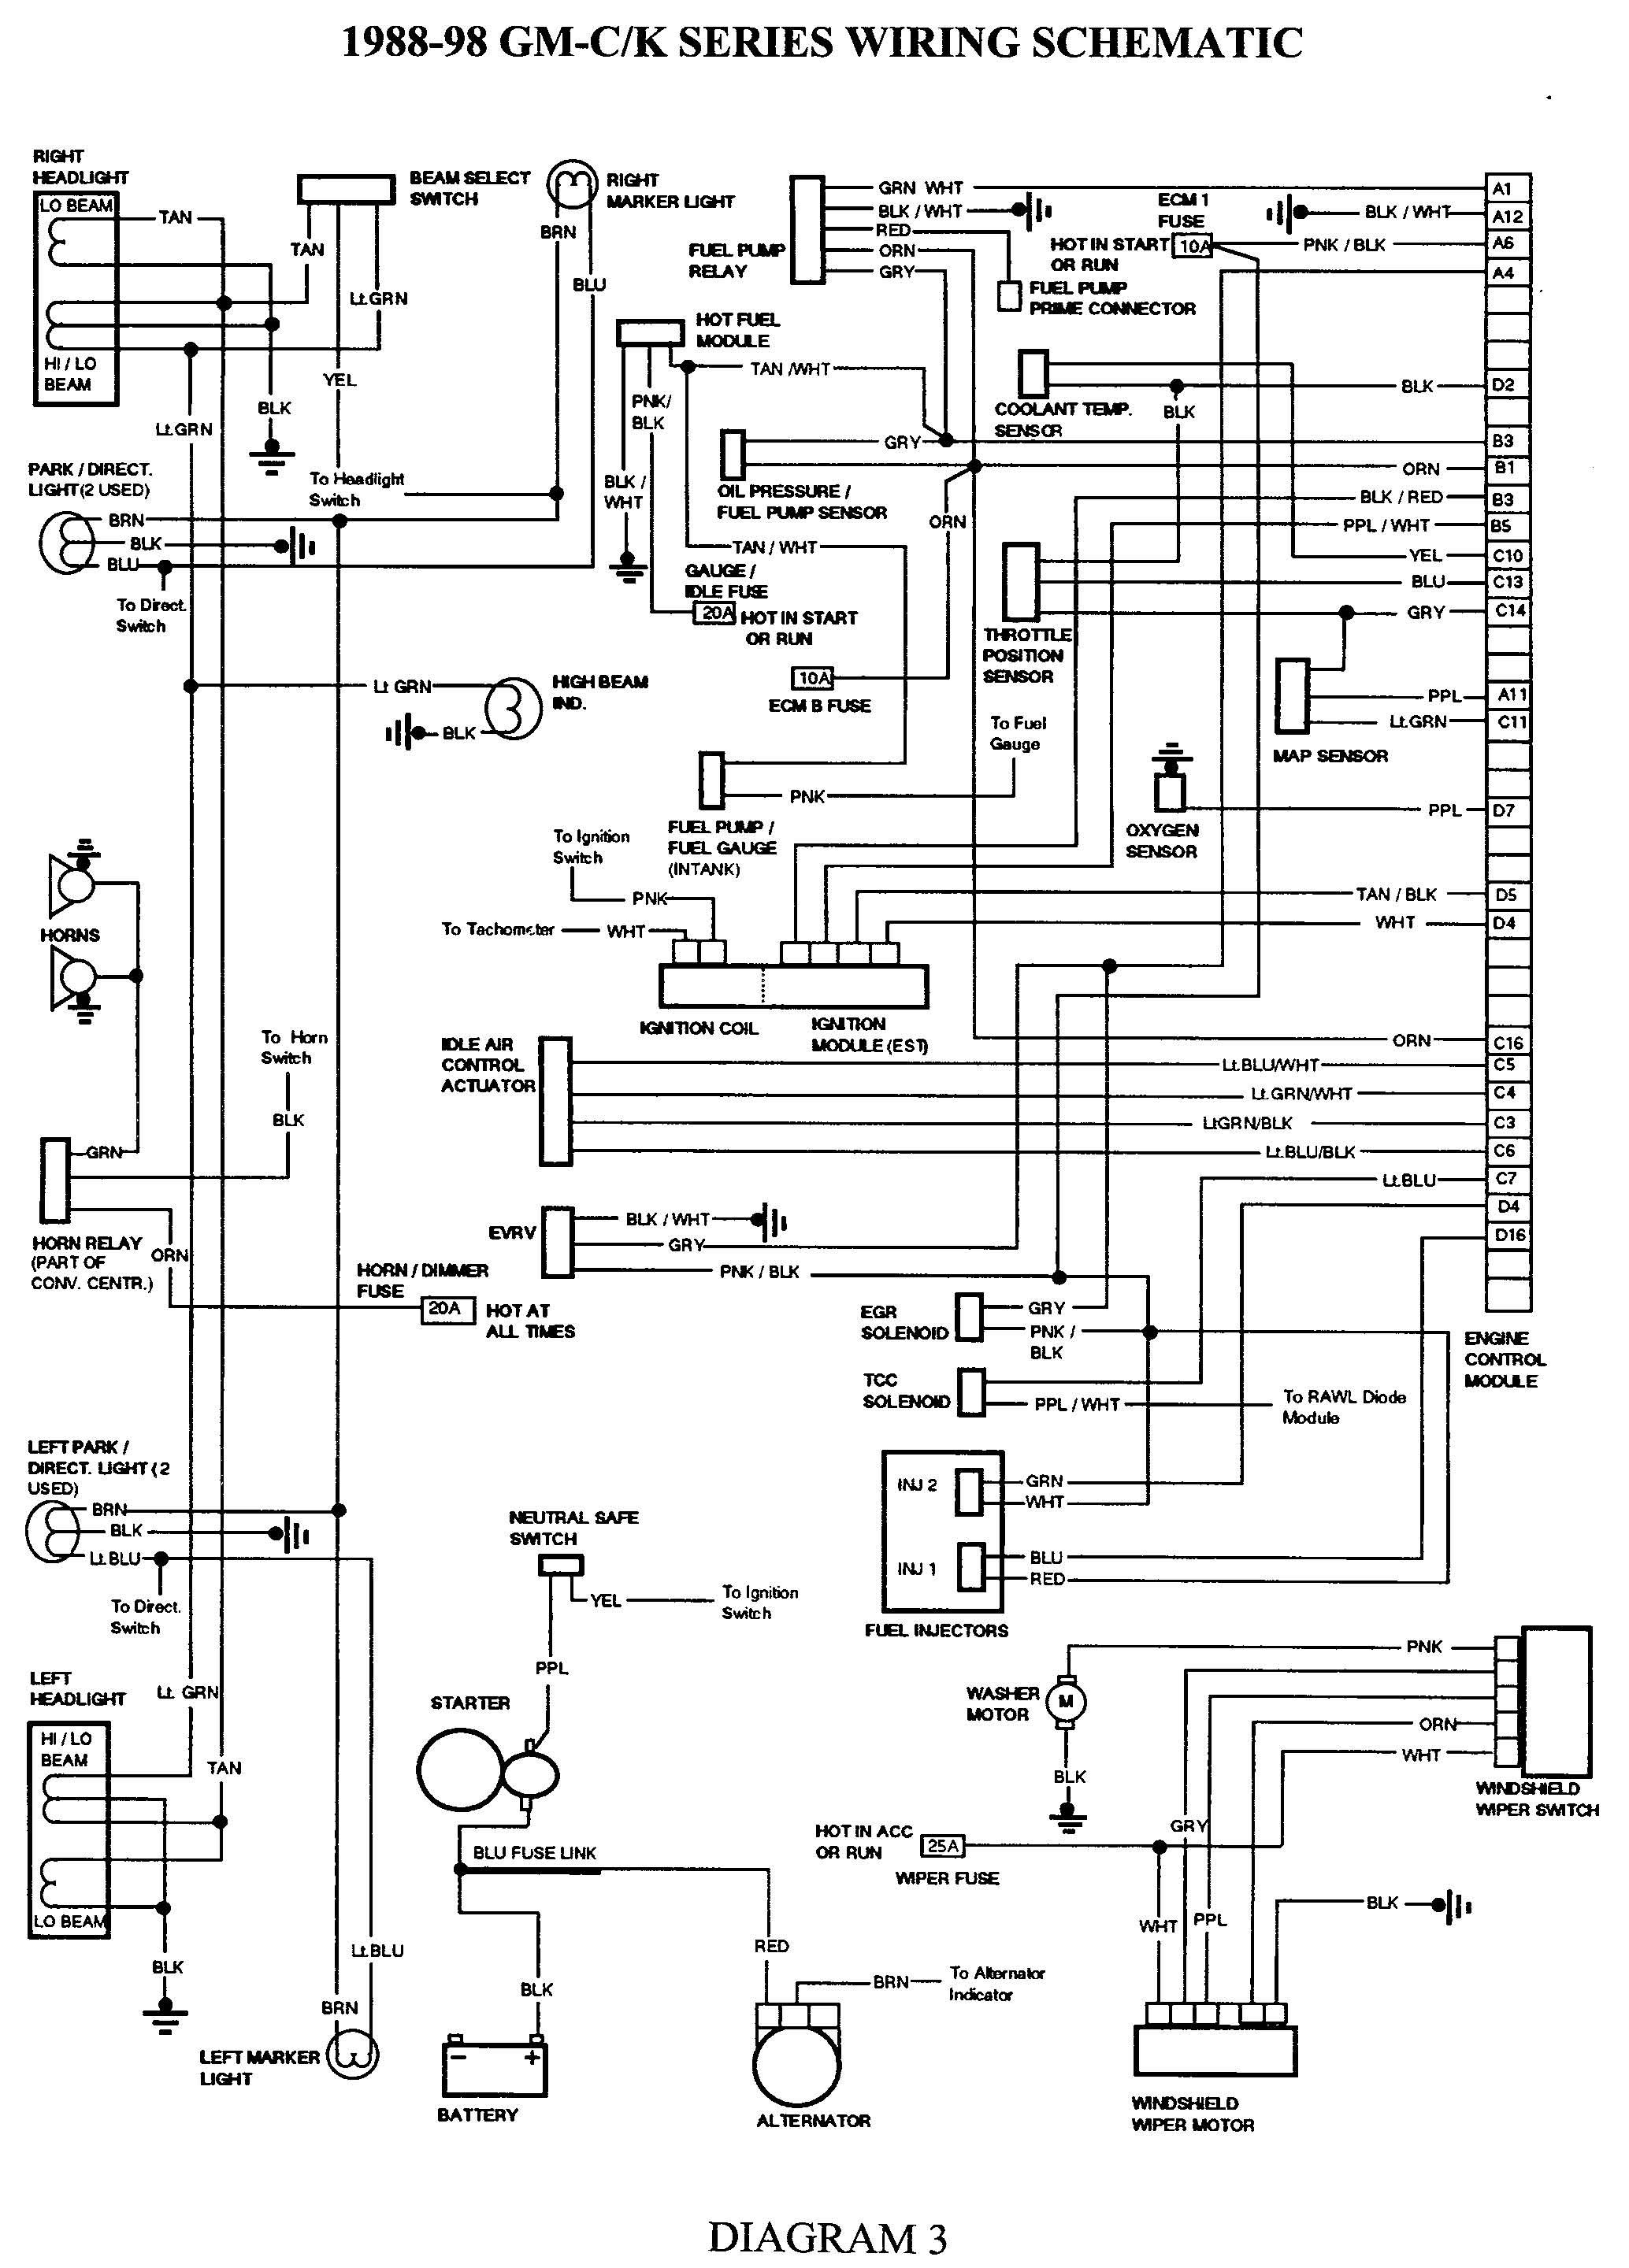 2500hd gm 7 way wiring diagram [ 2068 x 2880 Pixel ]